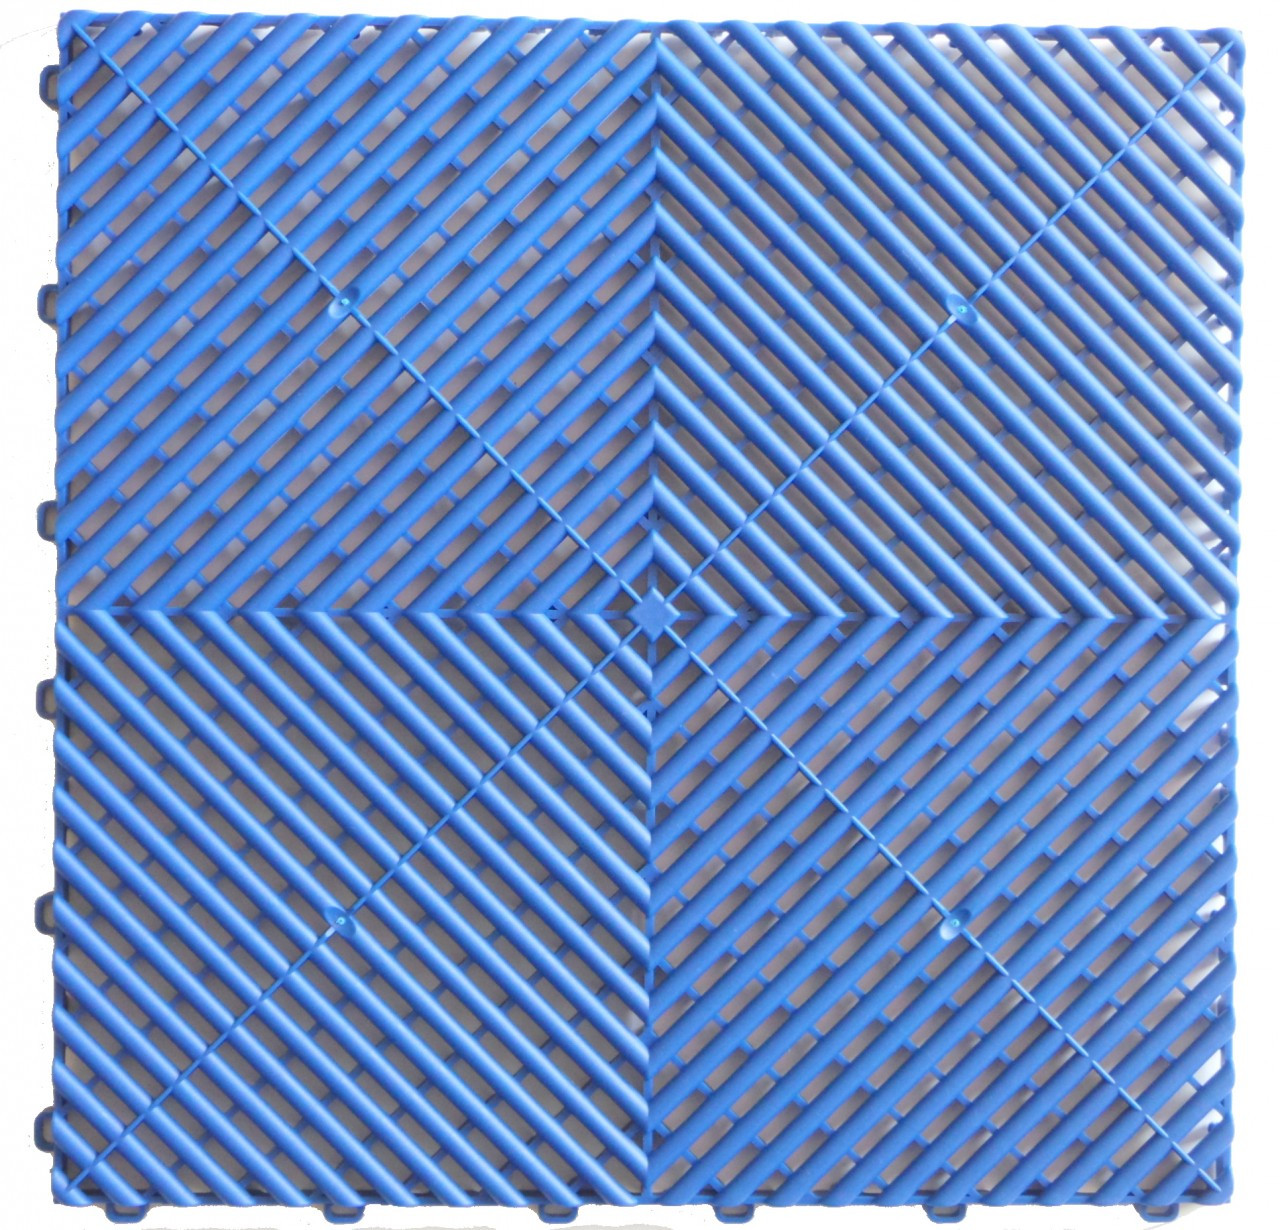 "Ribtrax ""Royal Blue"" Tile SALE PRICE ONLY $3.96 PER SQ FT - Size: 15 3/4"" x 15 3/4"" (1 Tile = 1.72 sq ft)"